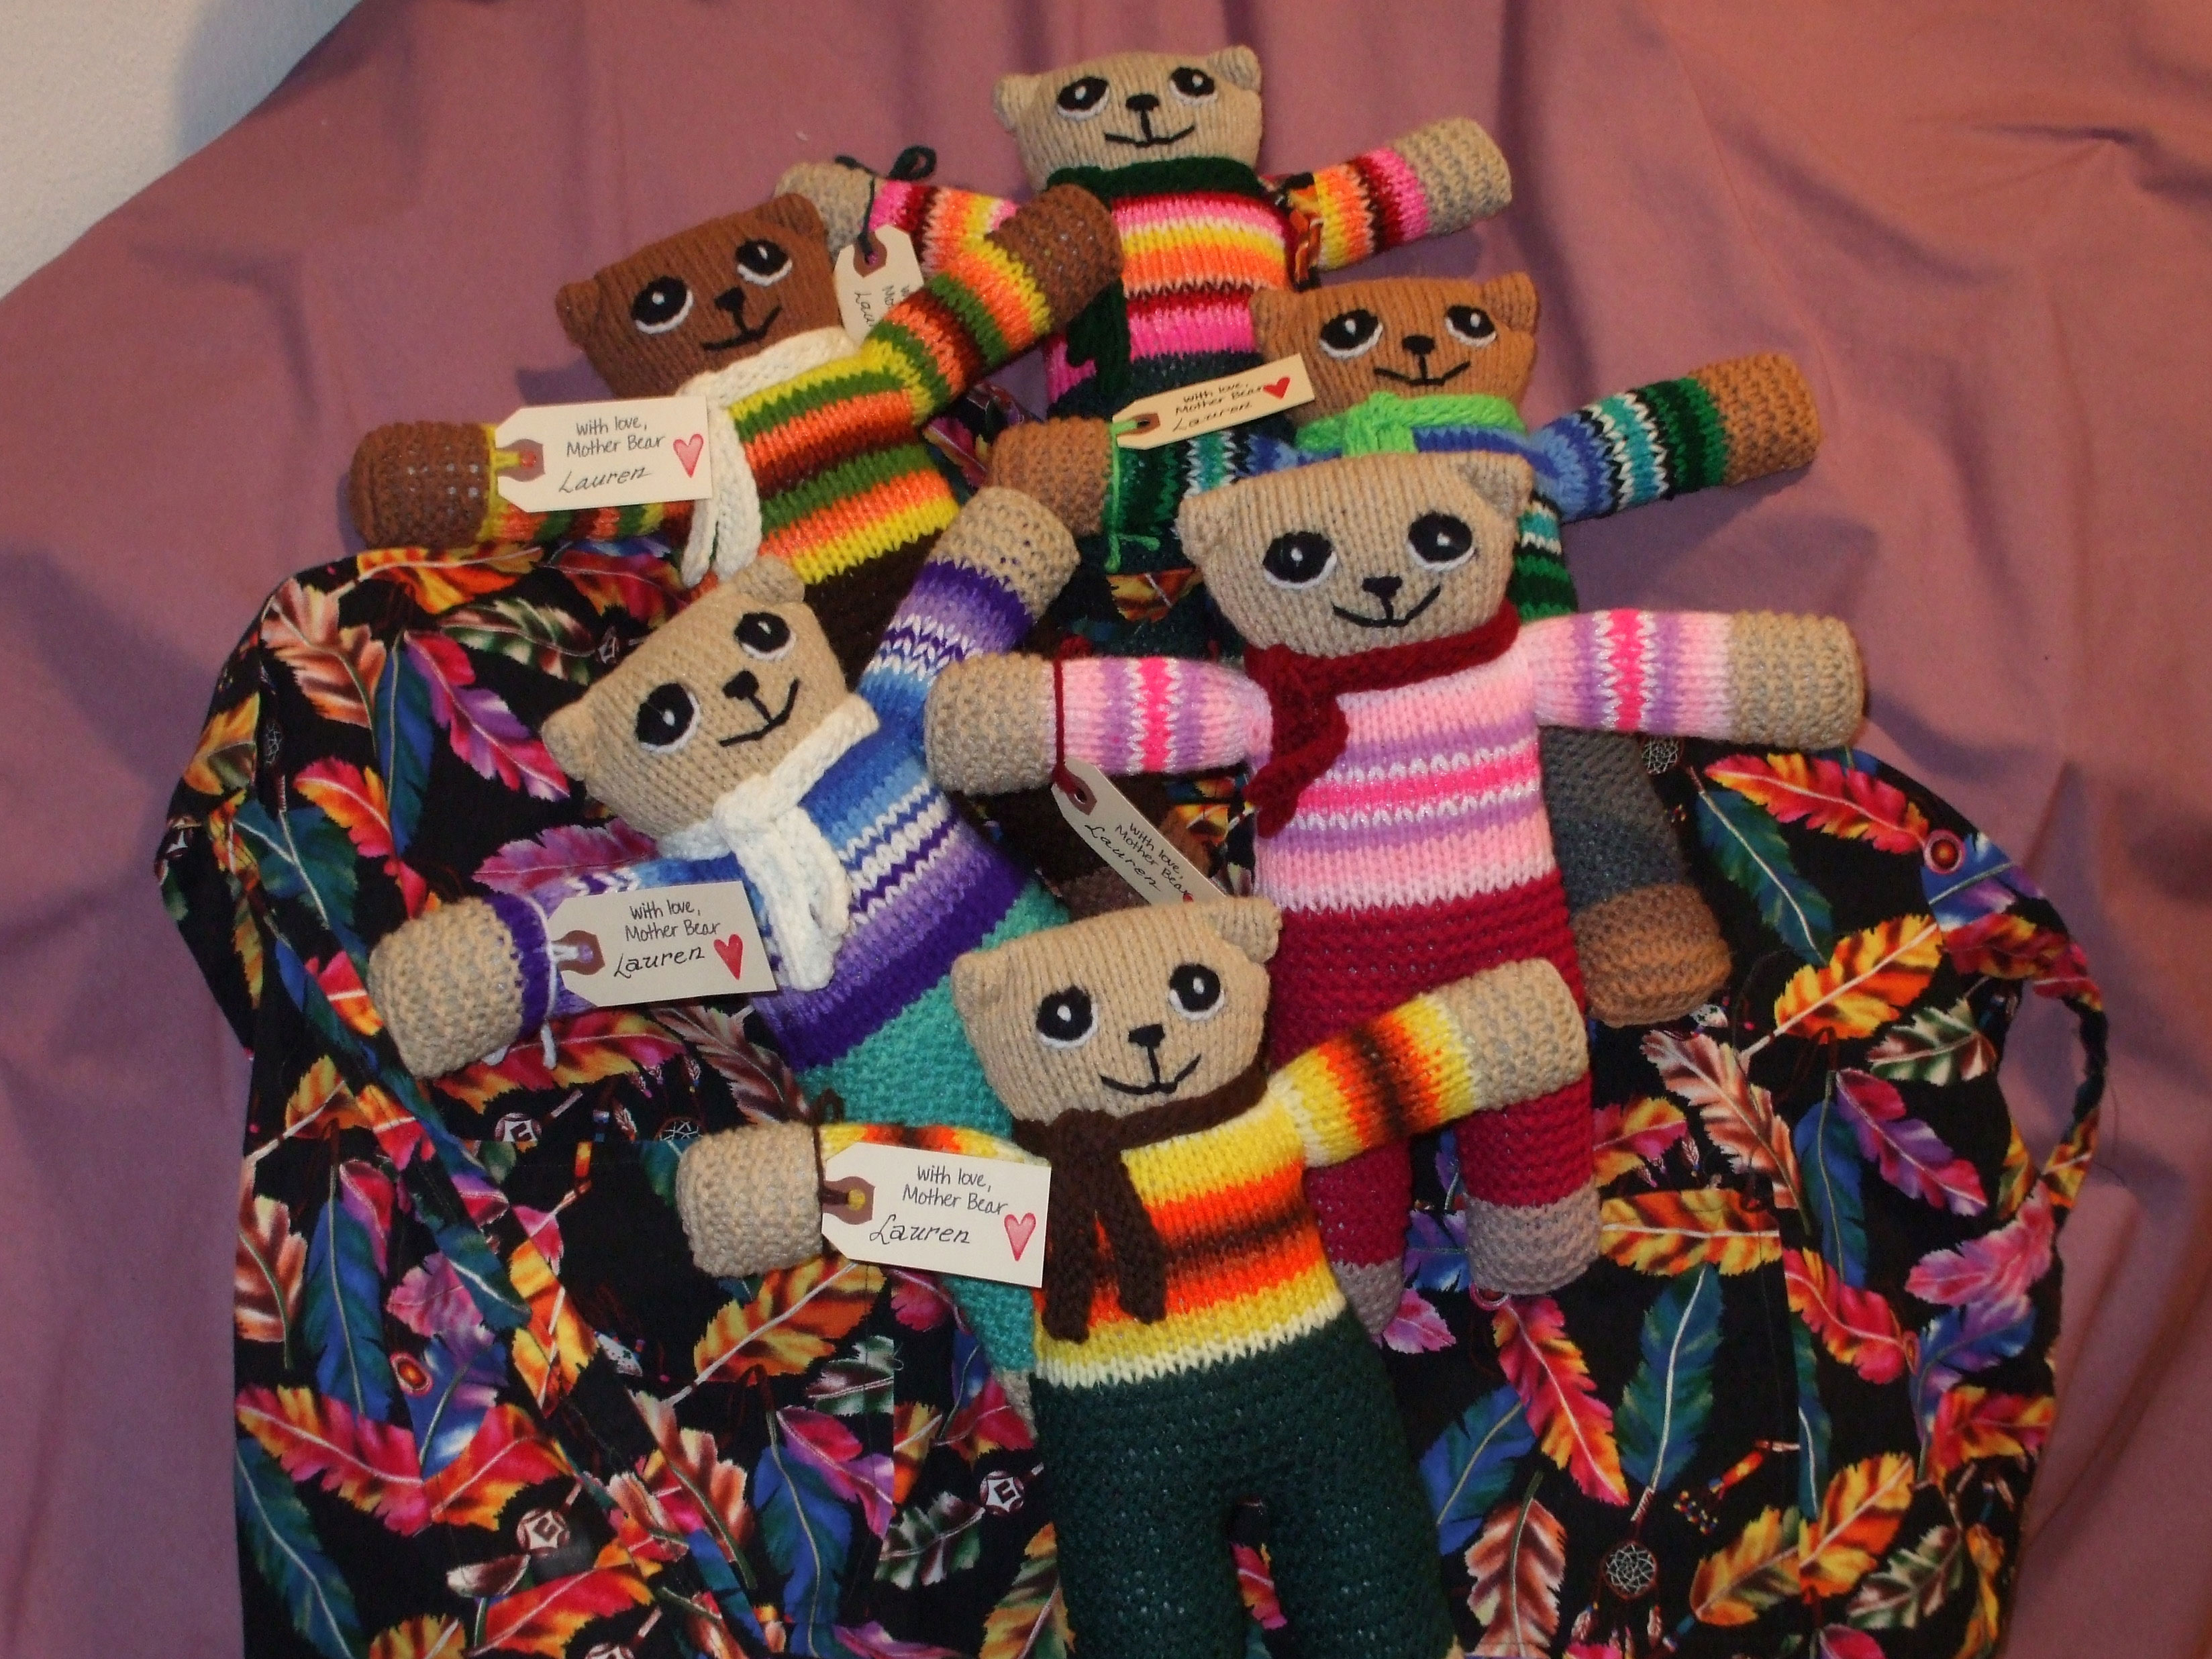 Bears created by Sister Lauren Spence for children in Africa.